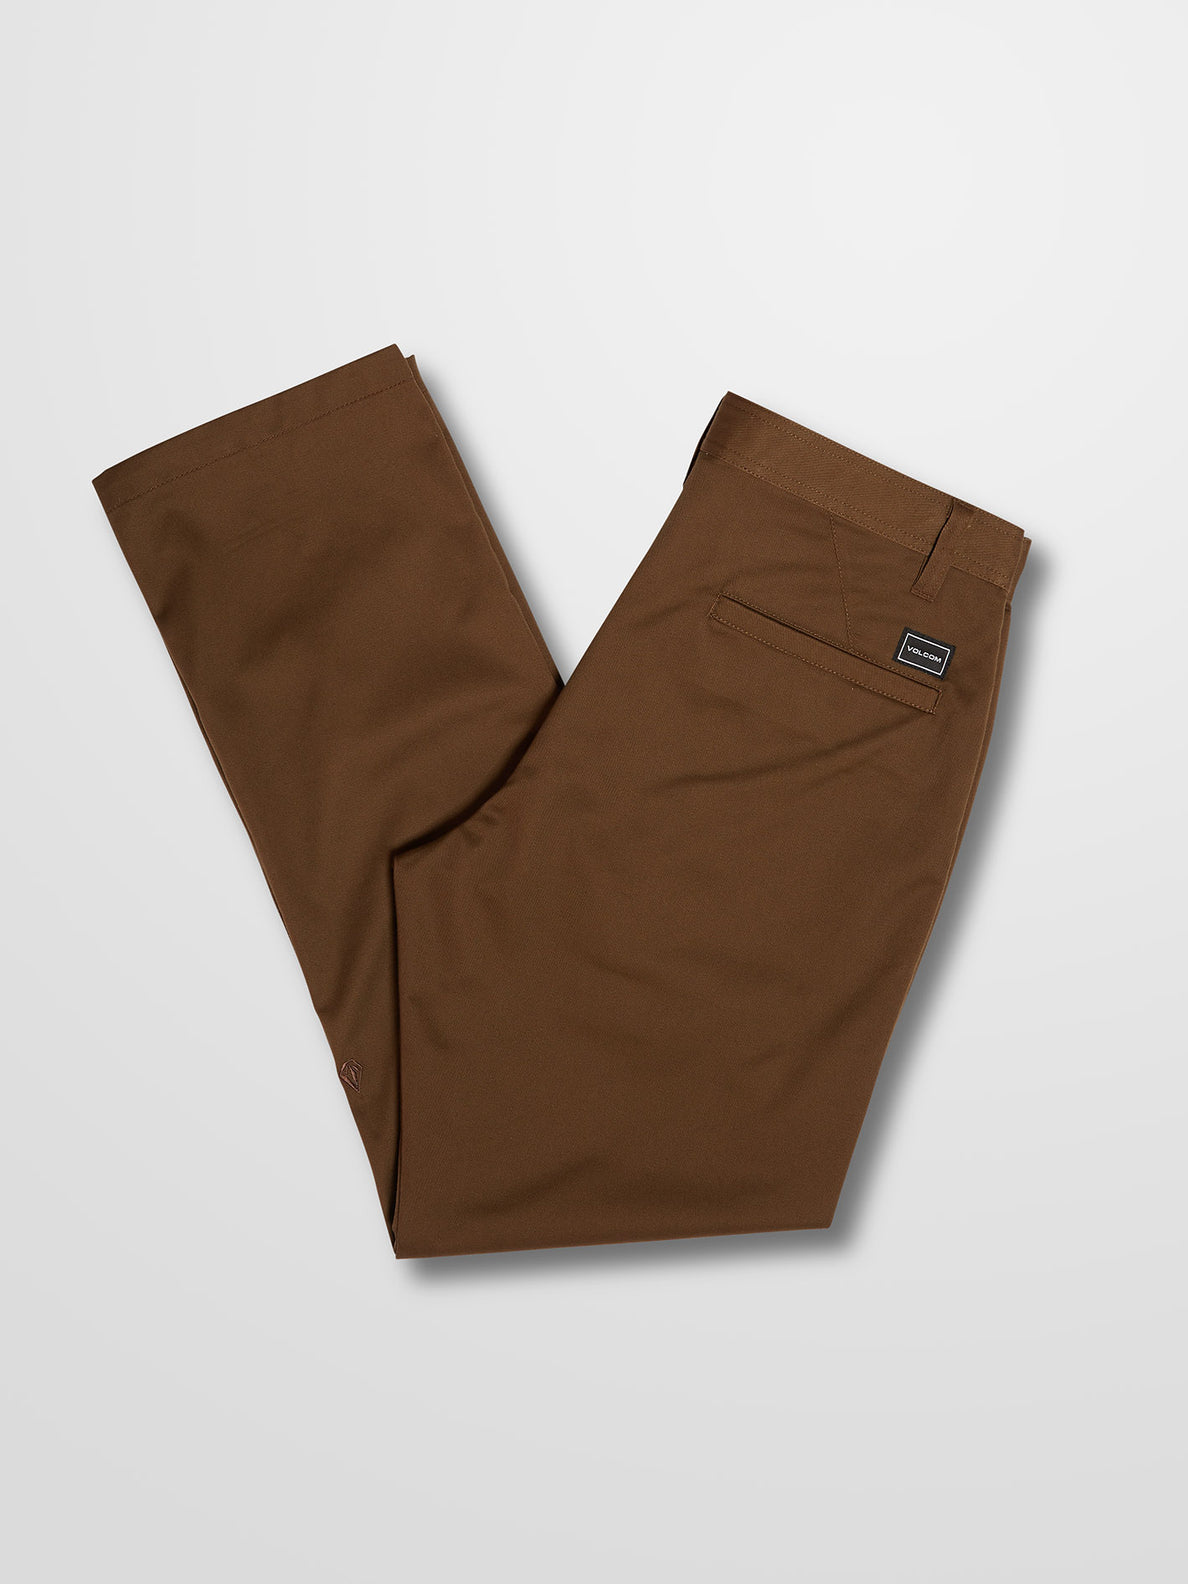 Substance Chino Pant - Vintage Brown (A1112104_VBN) [2]